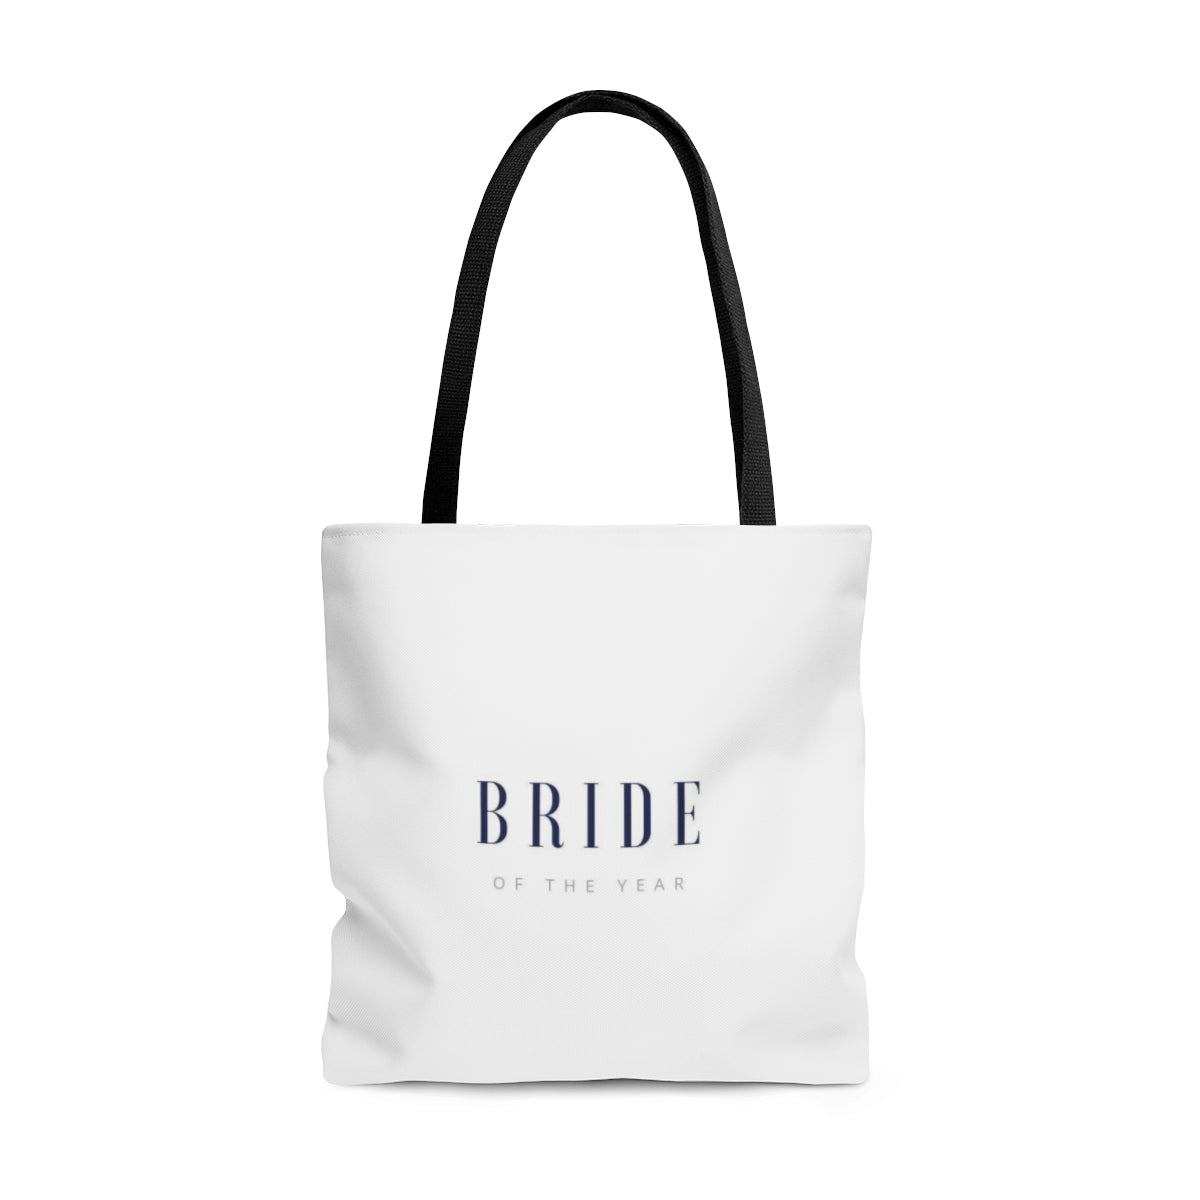 Bride of the Year Tote Bag - Crystal Flower